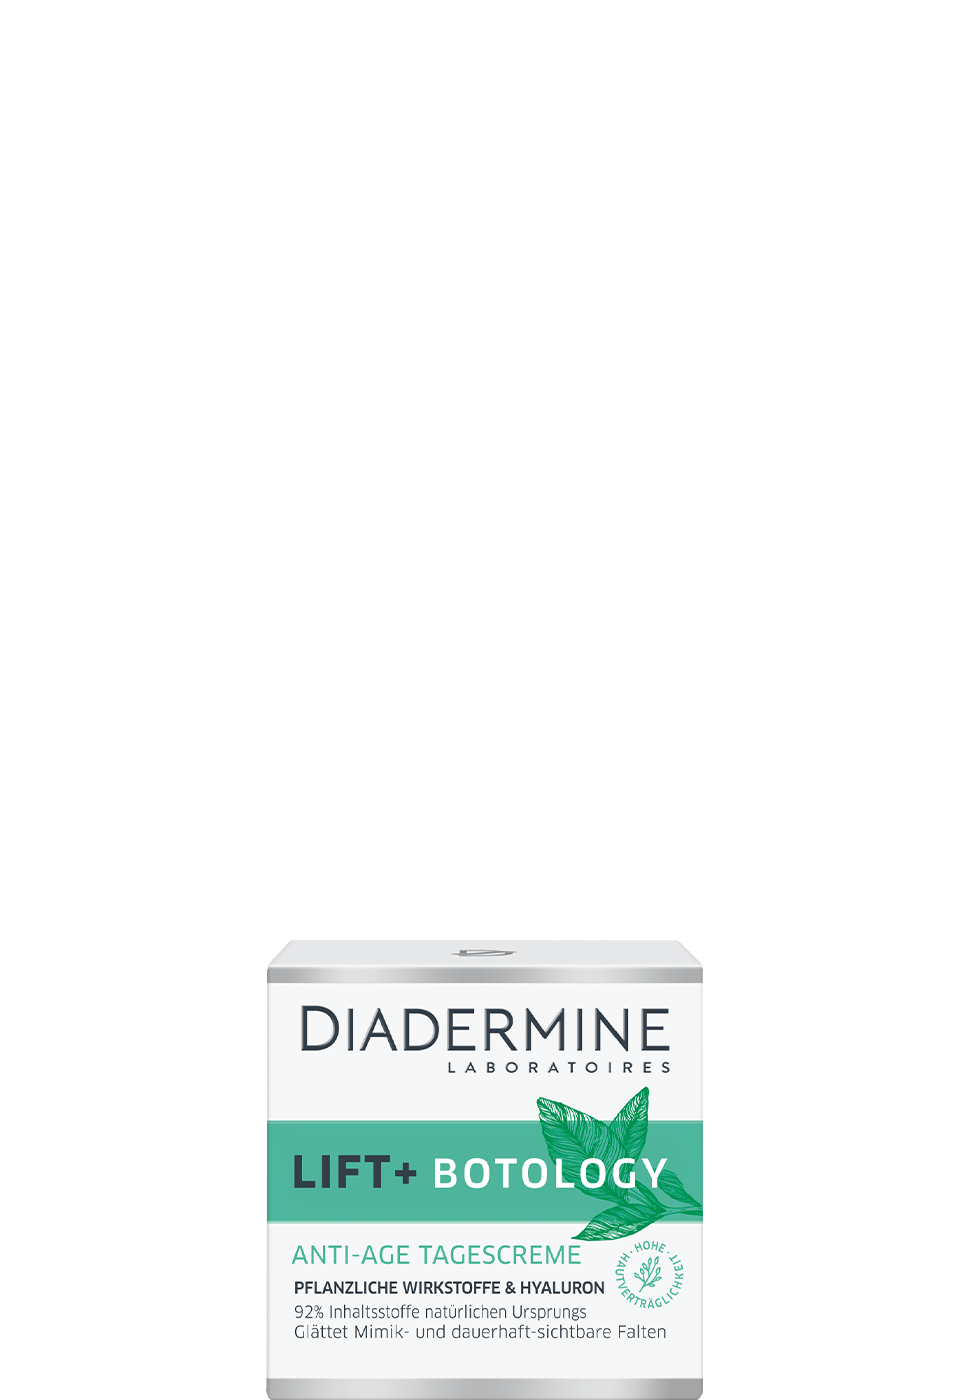 diadermine_de_lift_plus_botology_tagescreme_970x1400